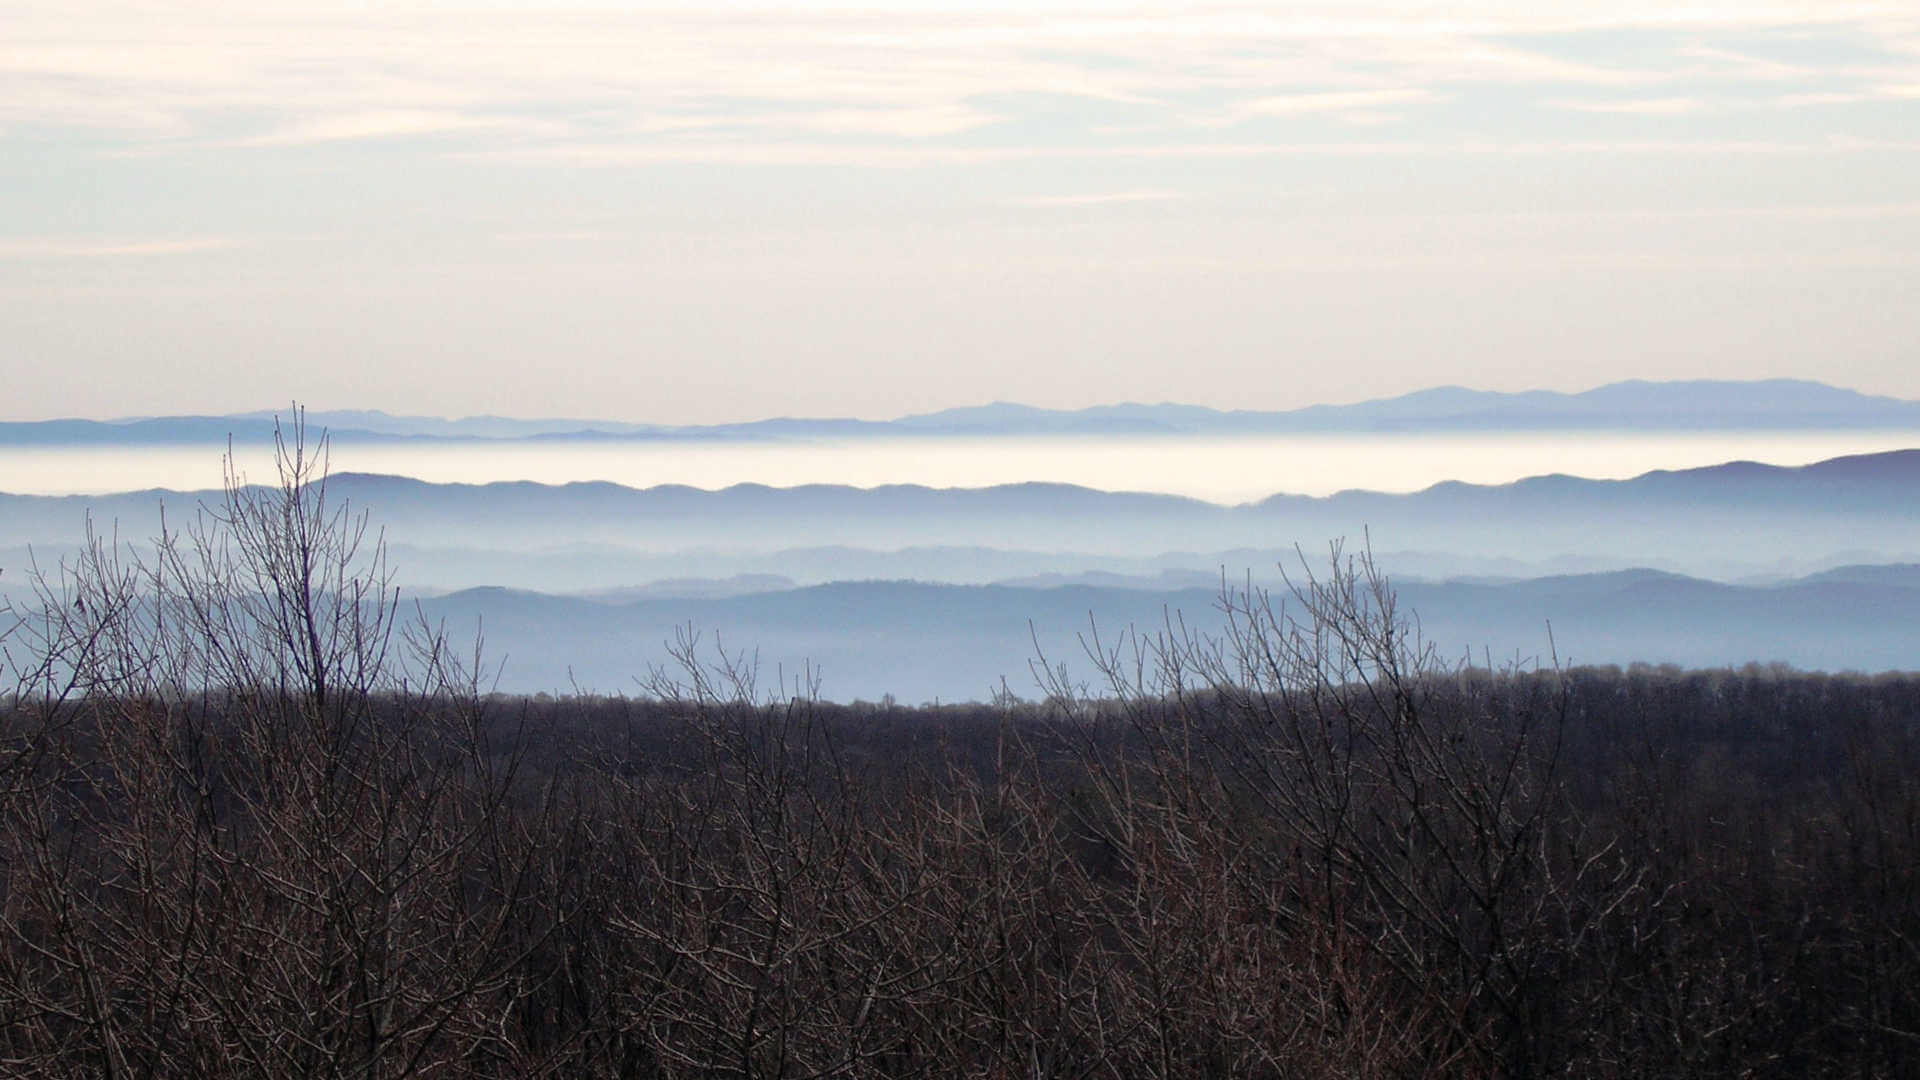 Looking out across the hills of Appalachia.